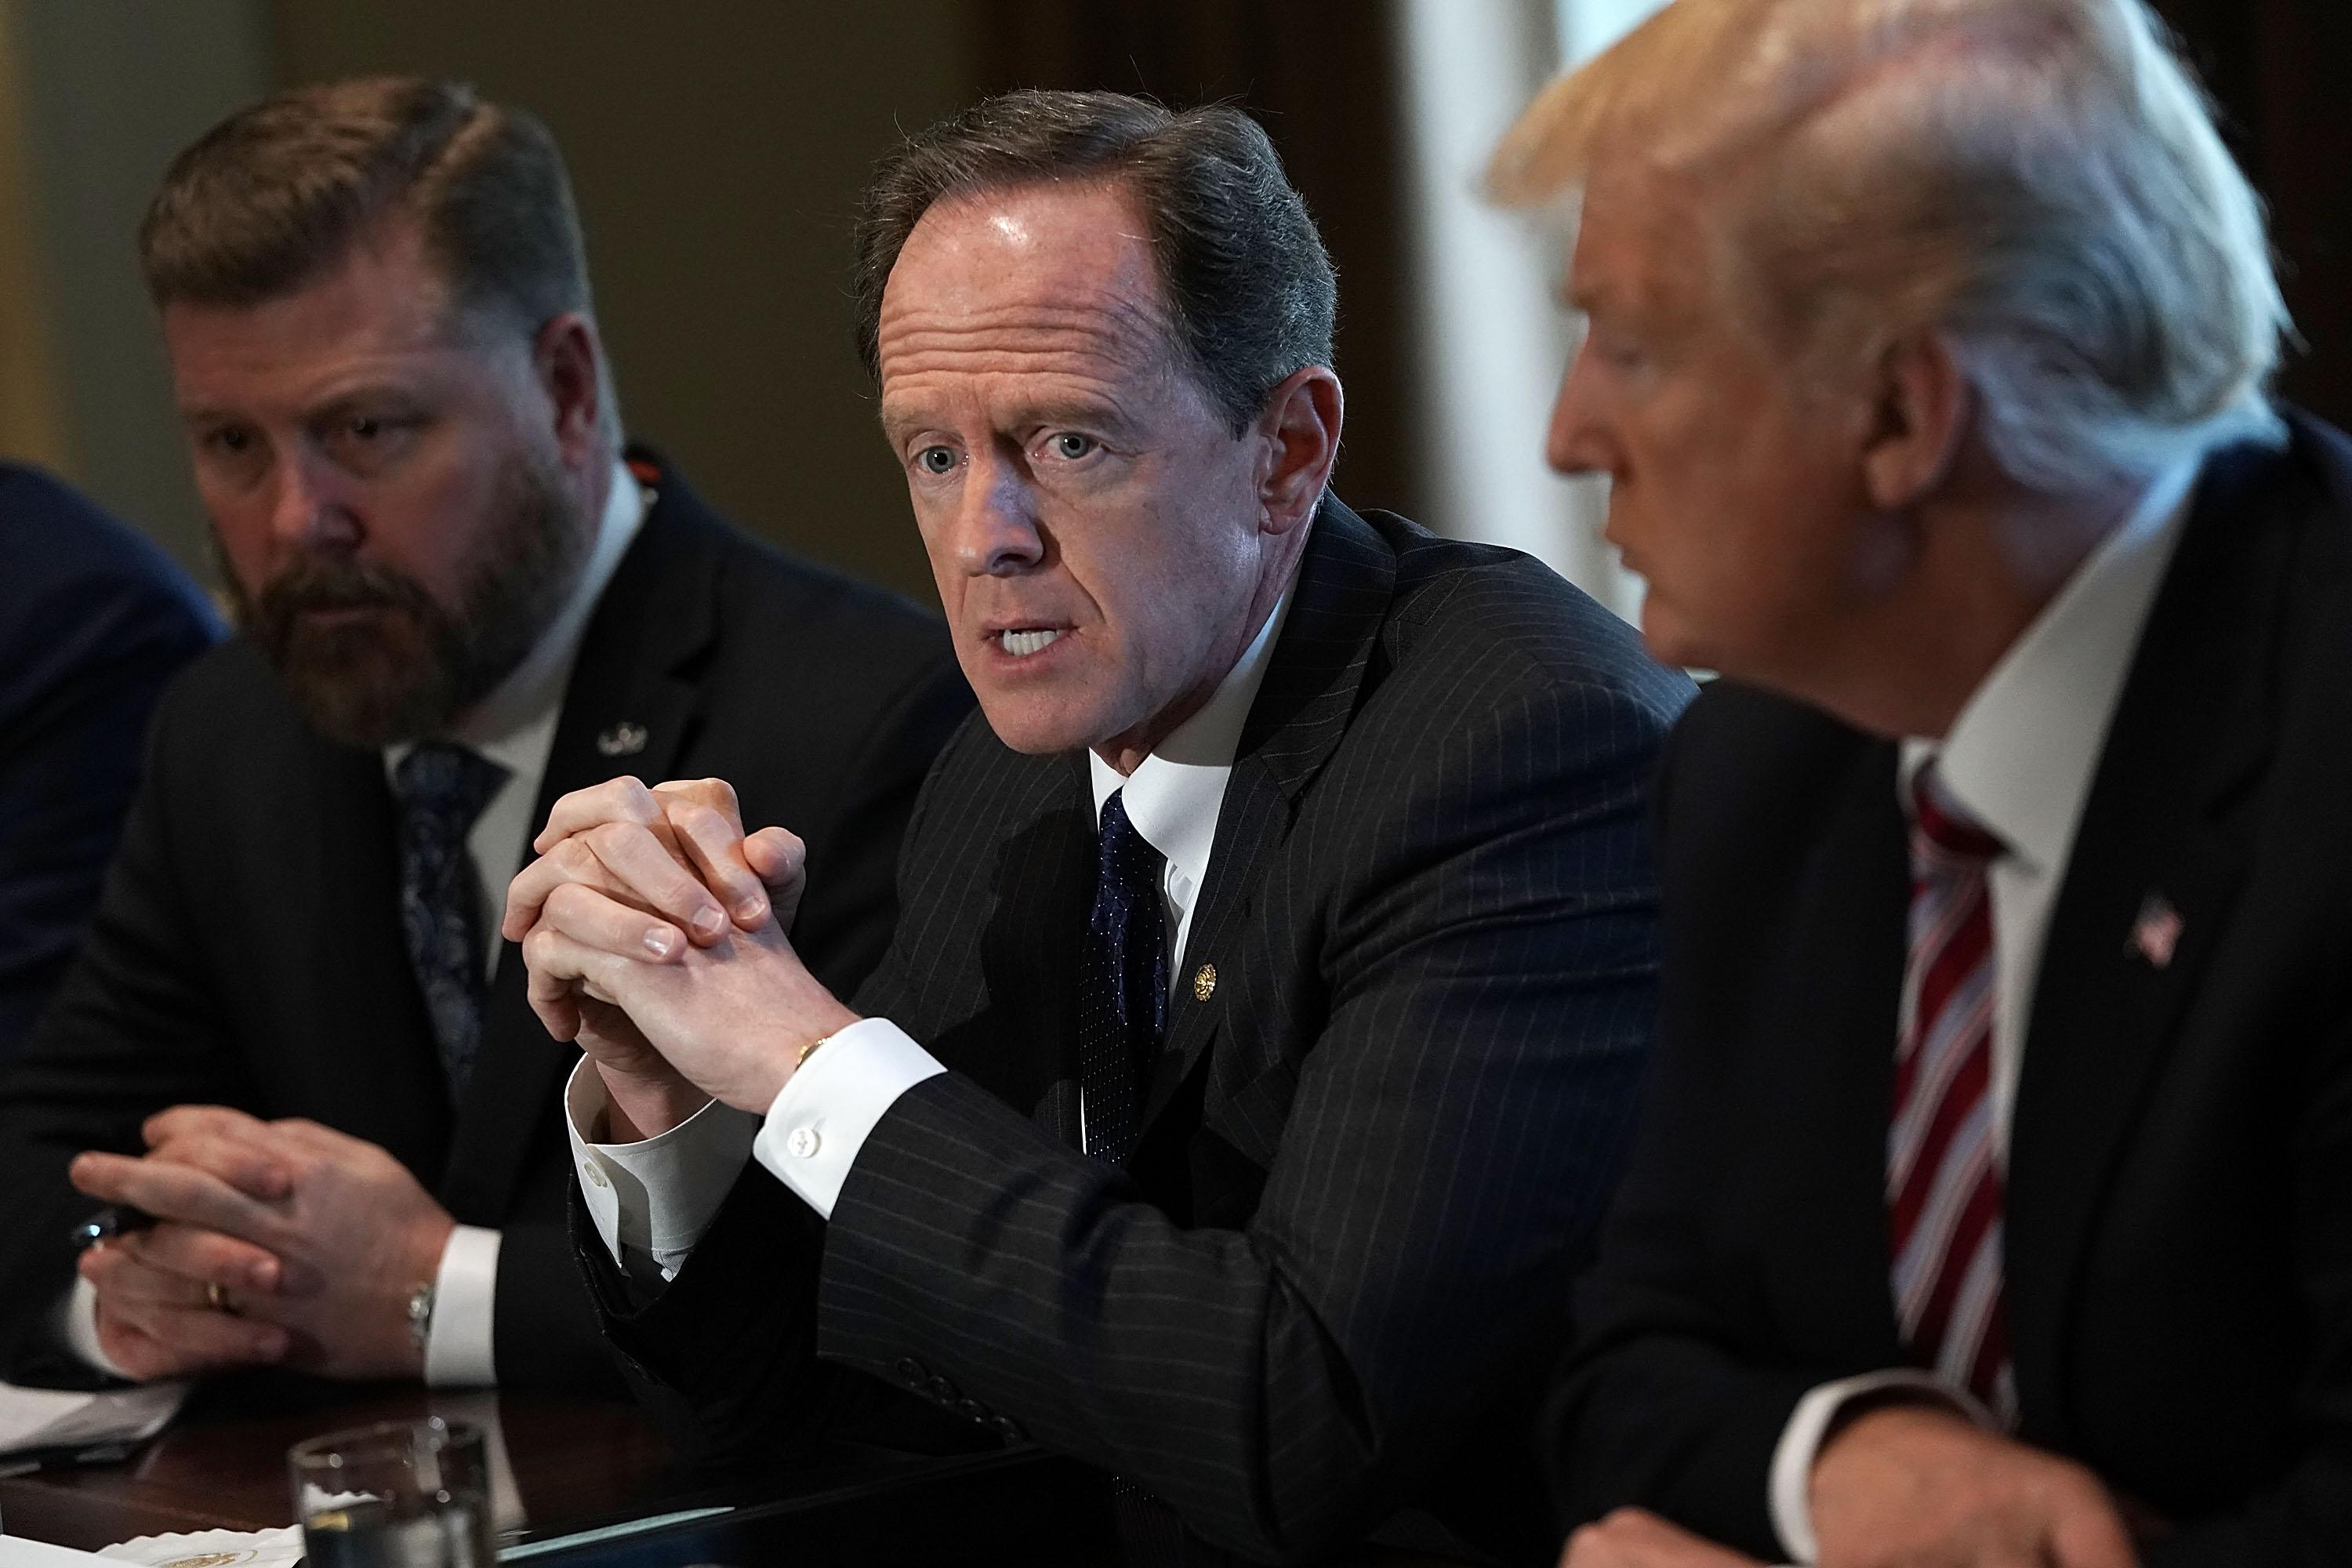 Sen. Pat Toomey (R-PA) during a meeting with congressional members at the White House February 13, 2018 in Washington, DC.